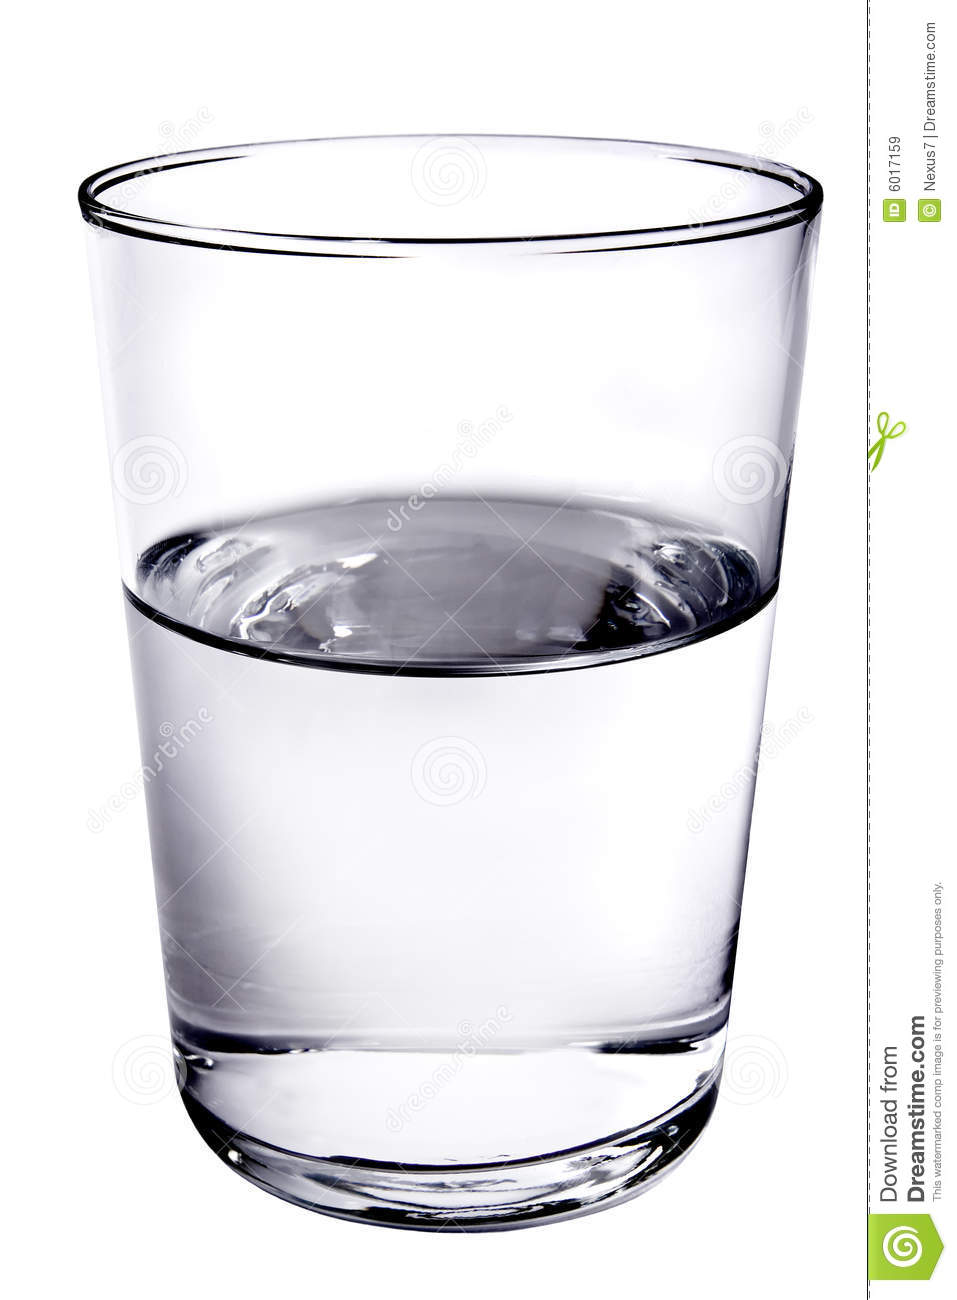 Glass Half Full Royalty Free Stock Images - Image: 6017159